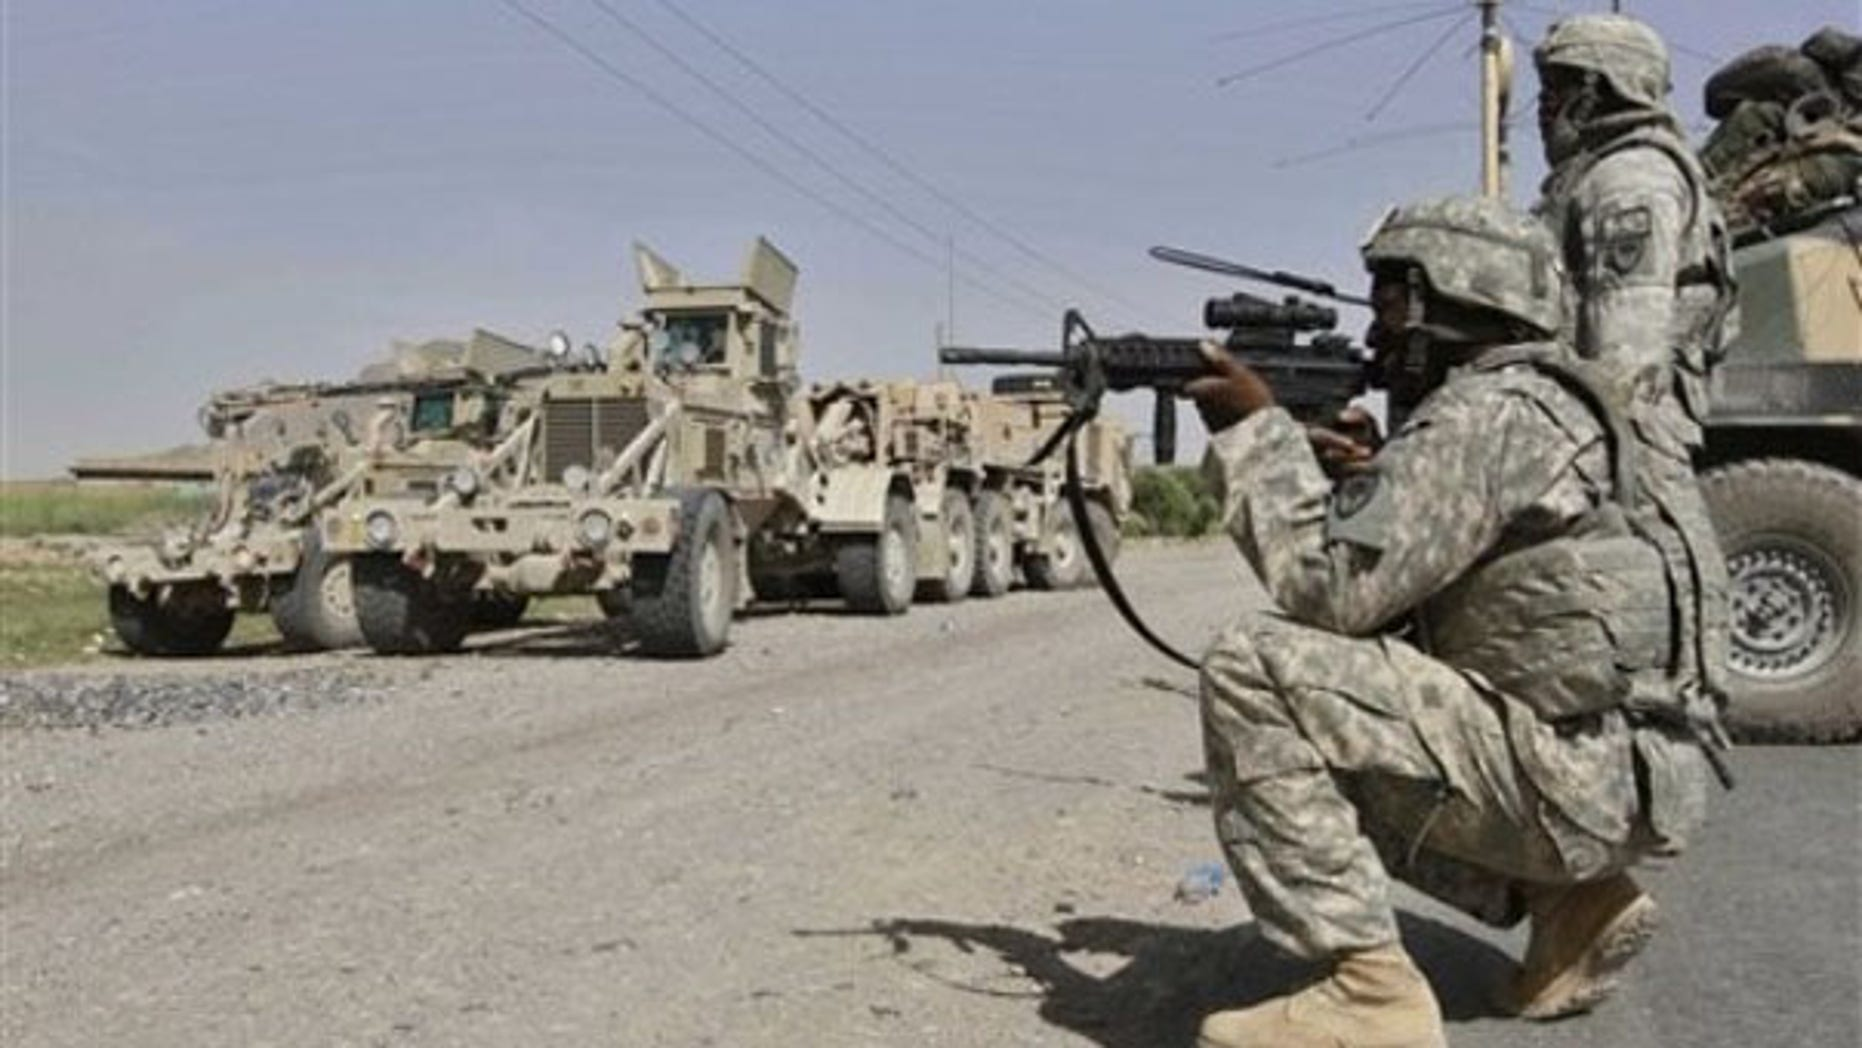 Thursday: A U.S. soldier looks at an approaching man through the sights of his assault rifle as the soldiers provide security during investigations at a site of suicide attack in Kandahar, Afghanistan. (AP Photo)